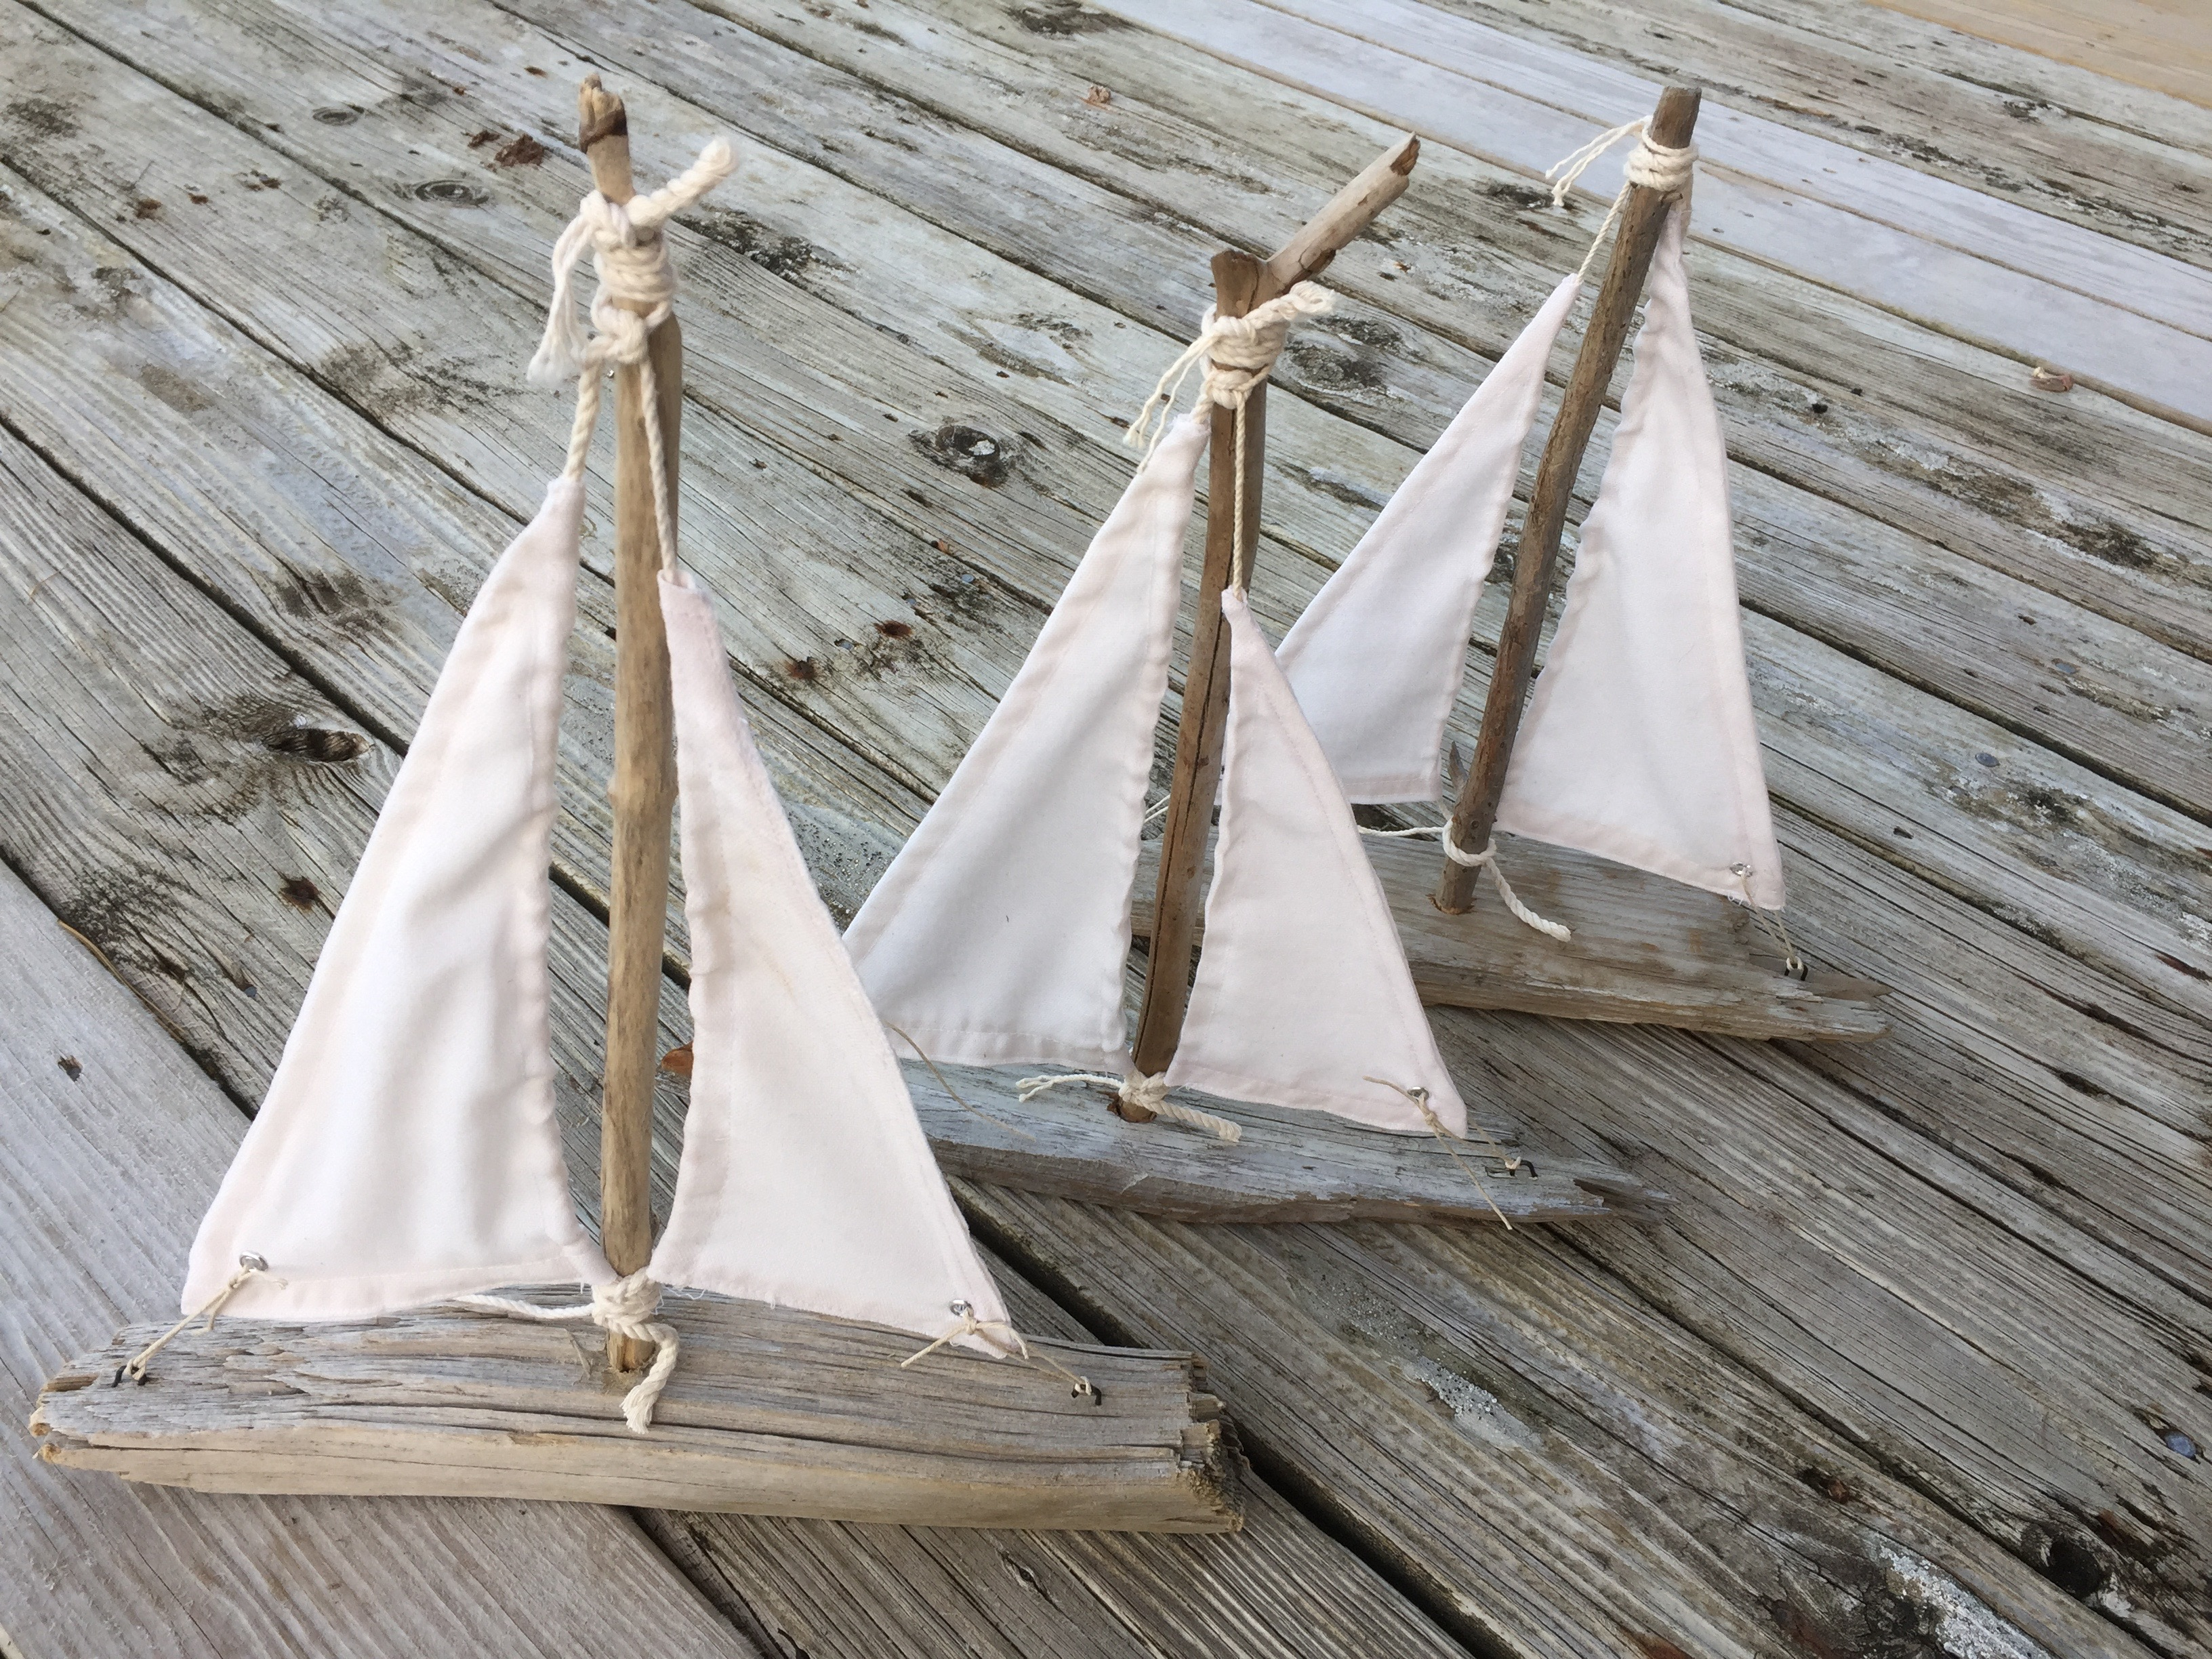 Home salty girl and the long dog for Diy driftwood sailboat